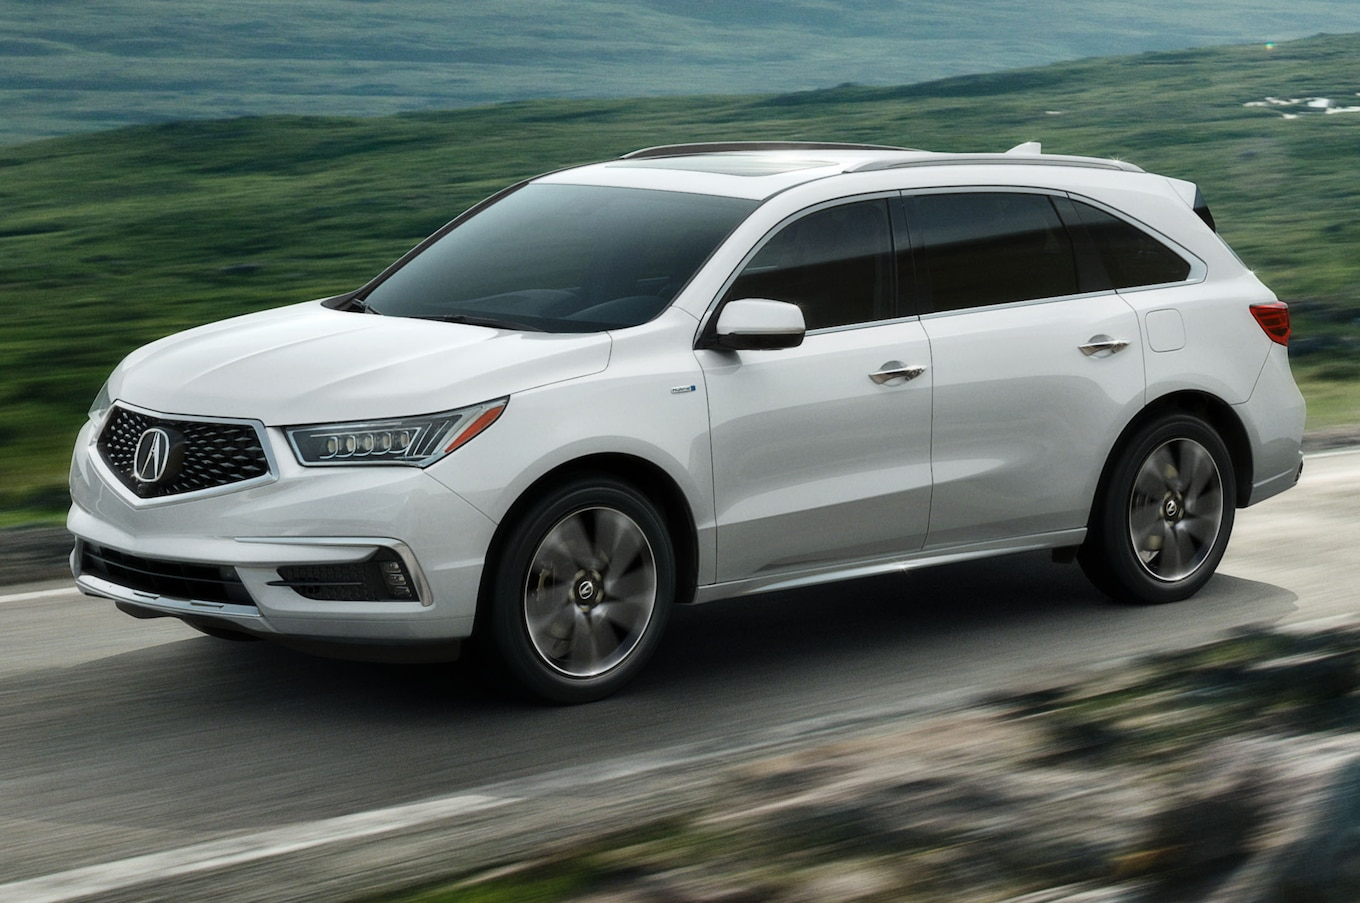 2017 Acura MDX First Look Review